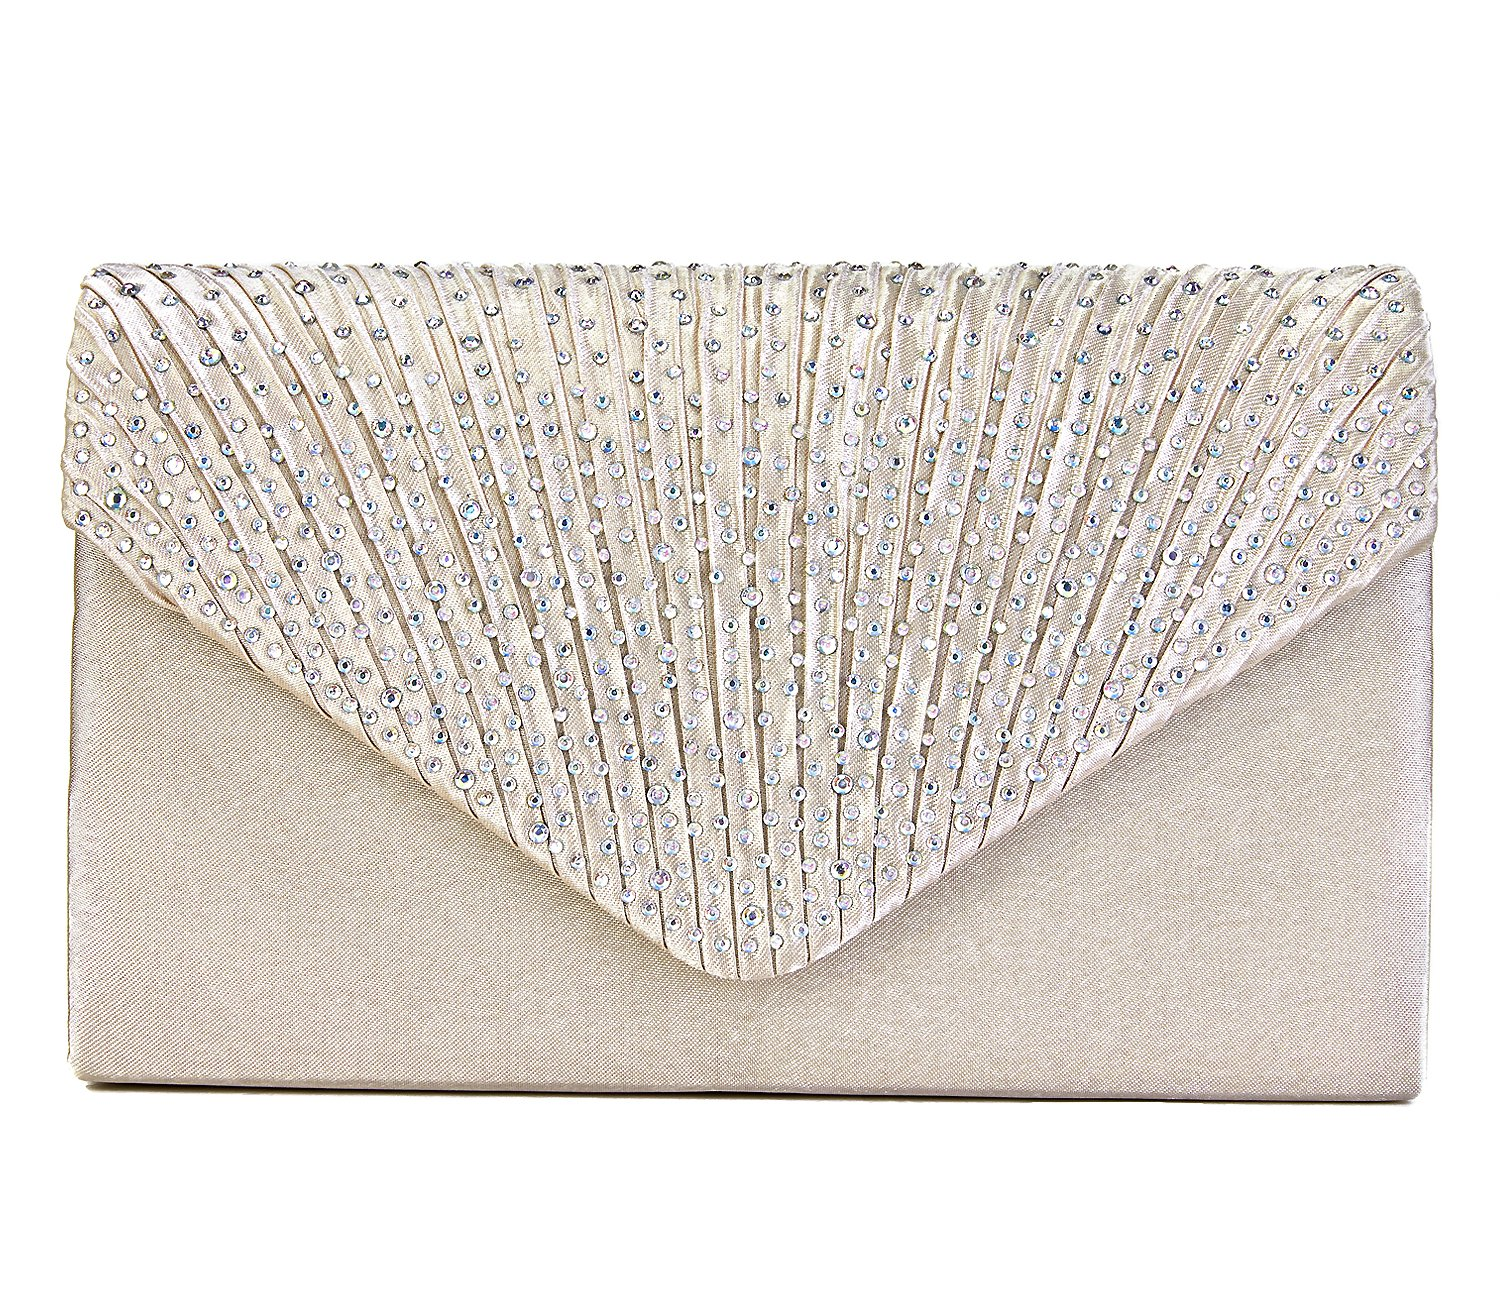 Charming Tailor Clutch Purse Evening Bag Envelope Diamante and Pleated Flap Handbag (Champagne)